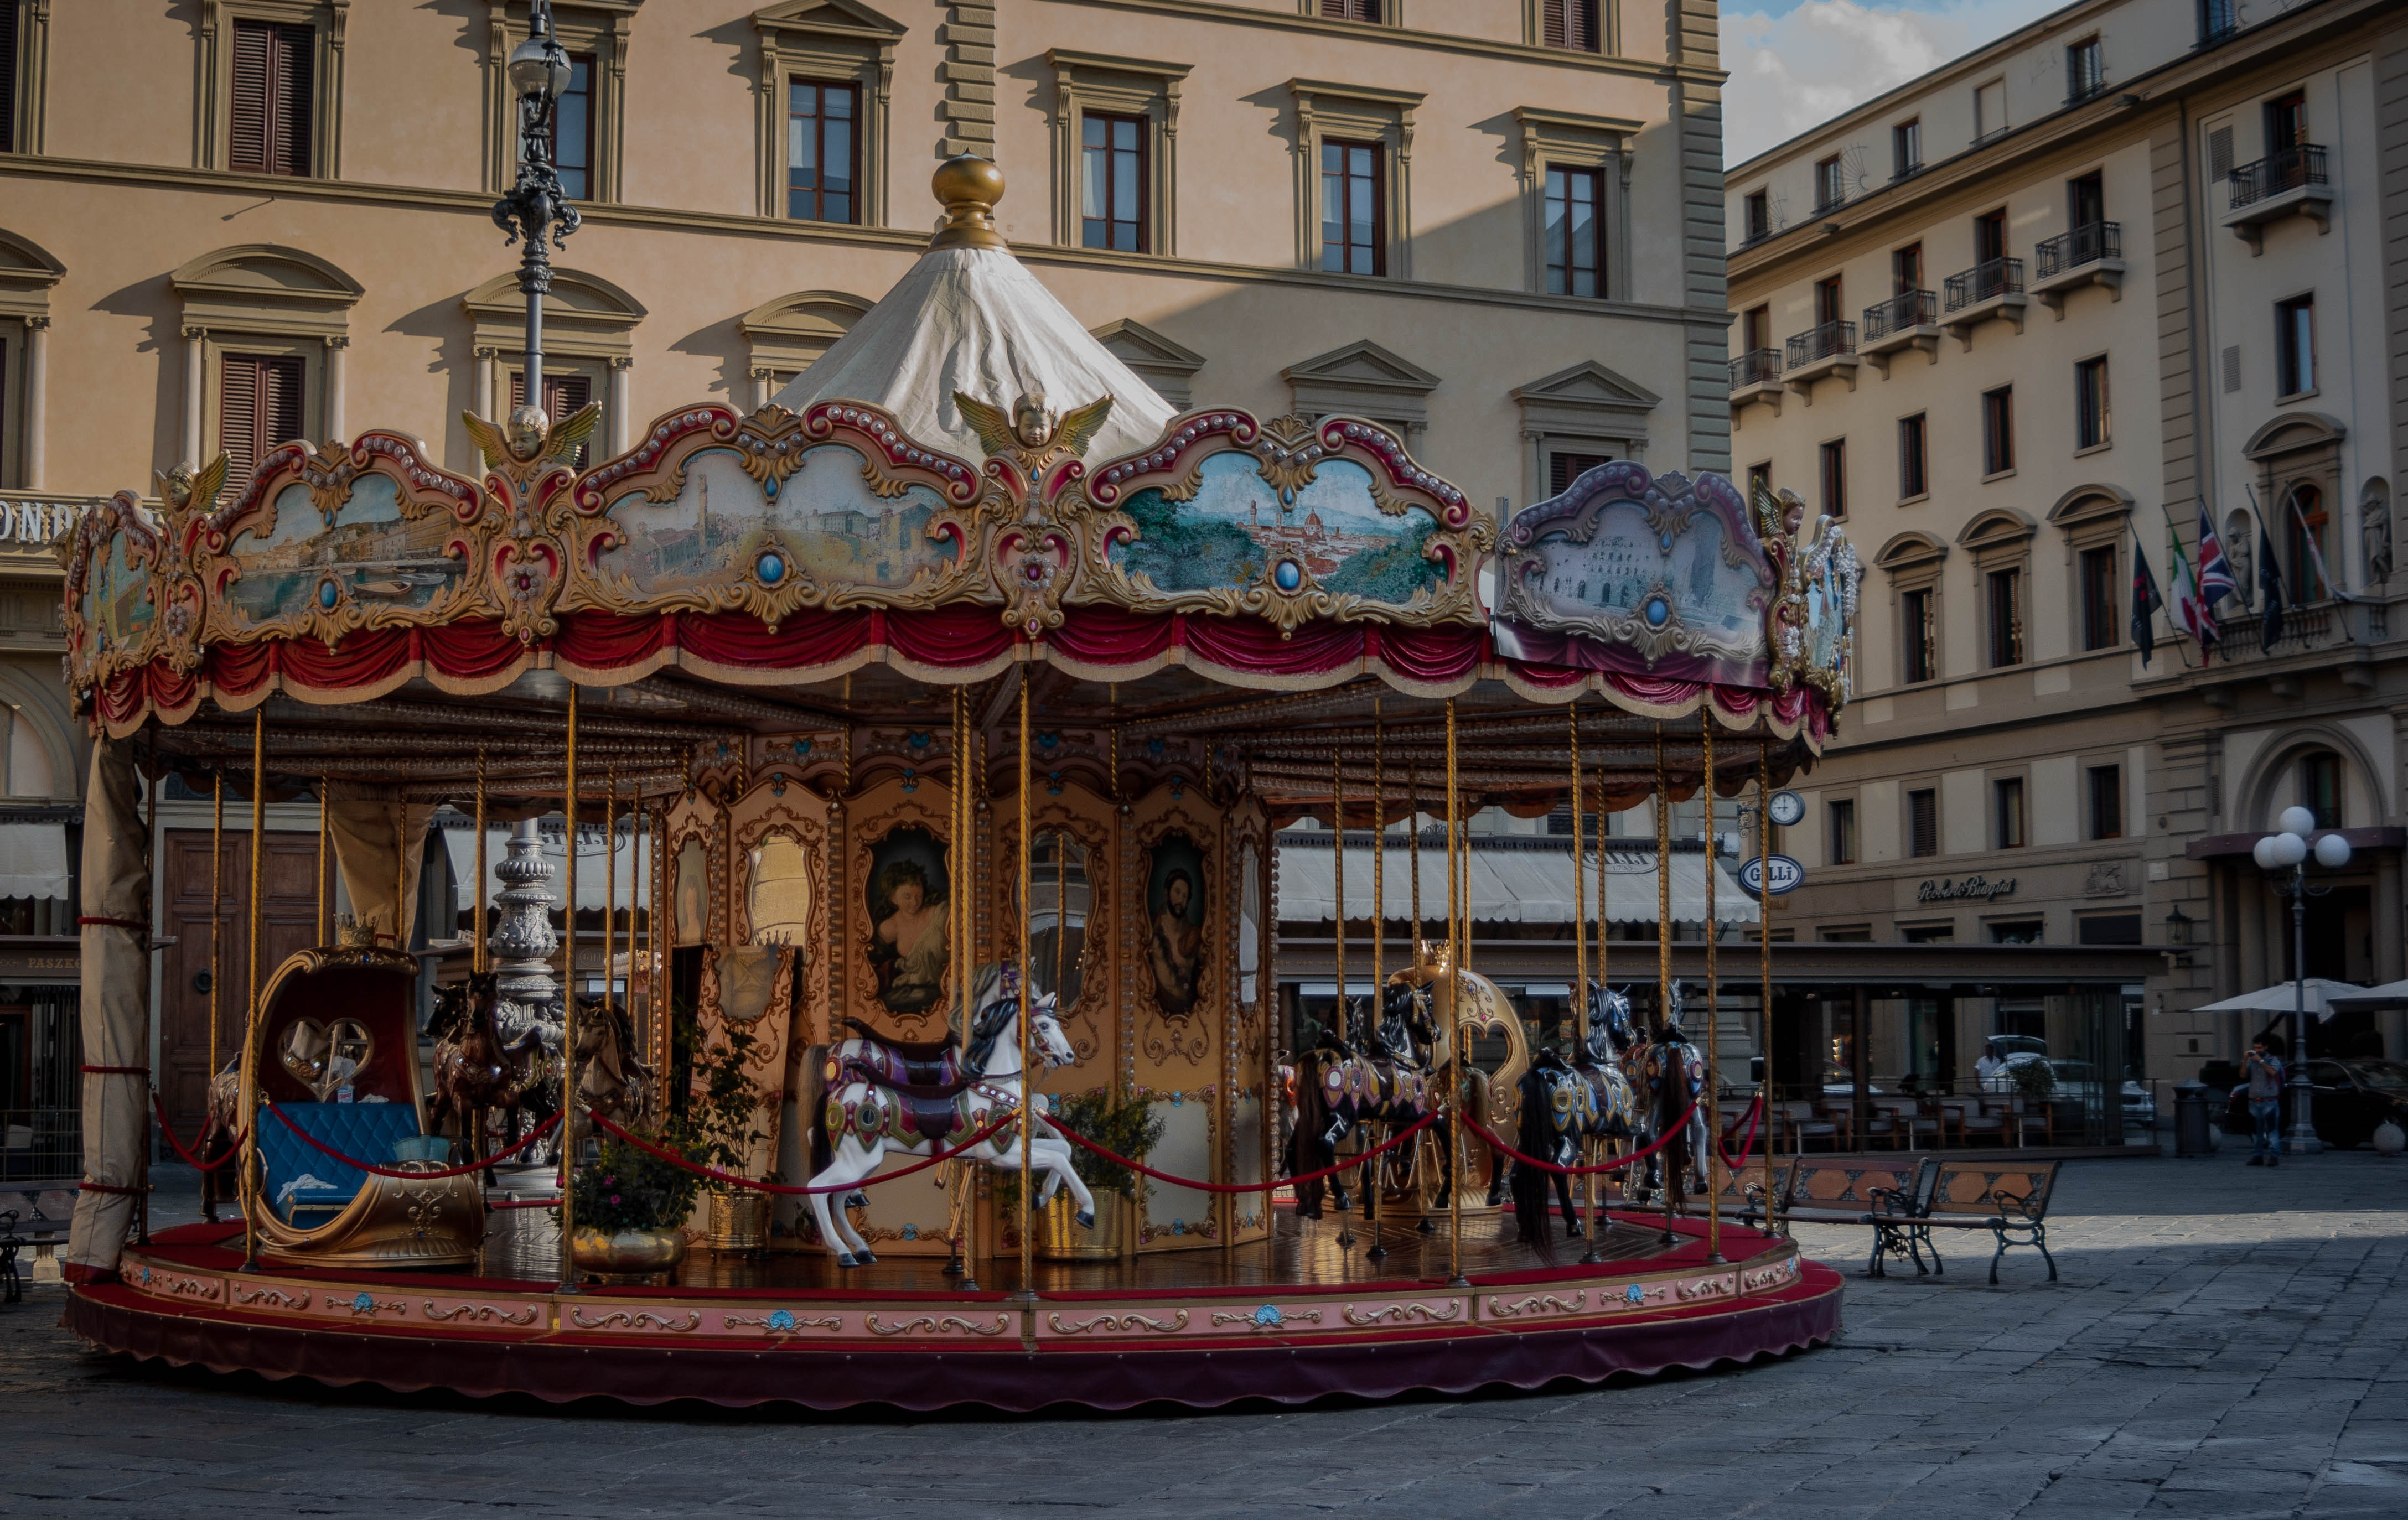 carousel in the city at daytime